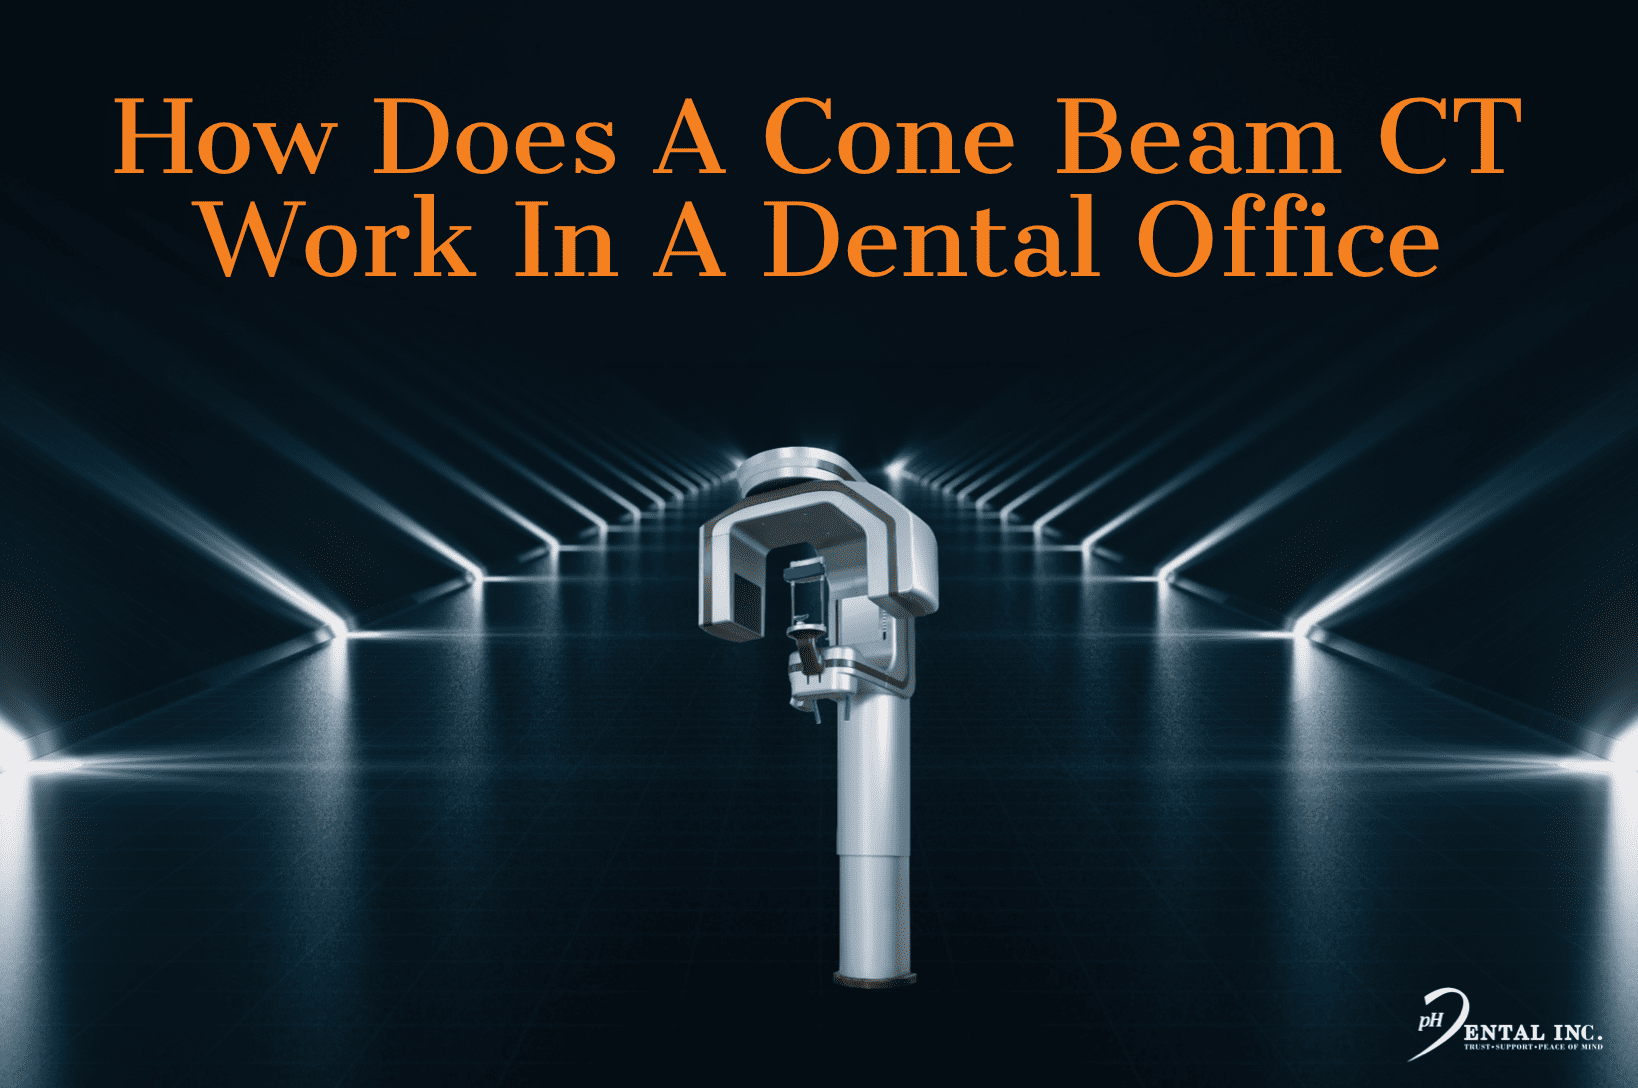 How Does a Cone Beam CT Work In A Dental Office Feature Image